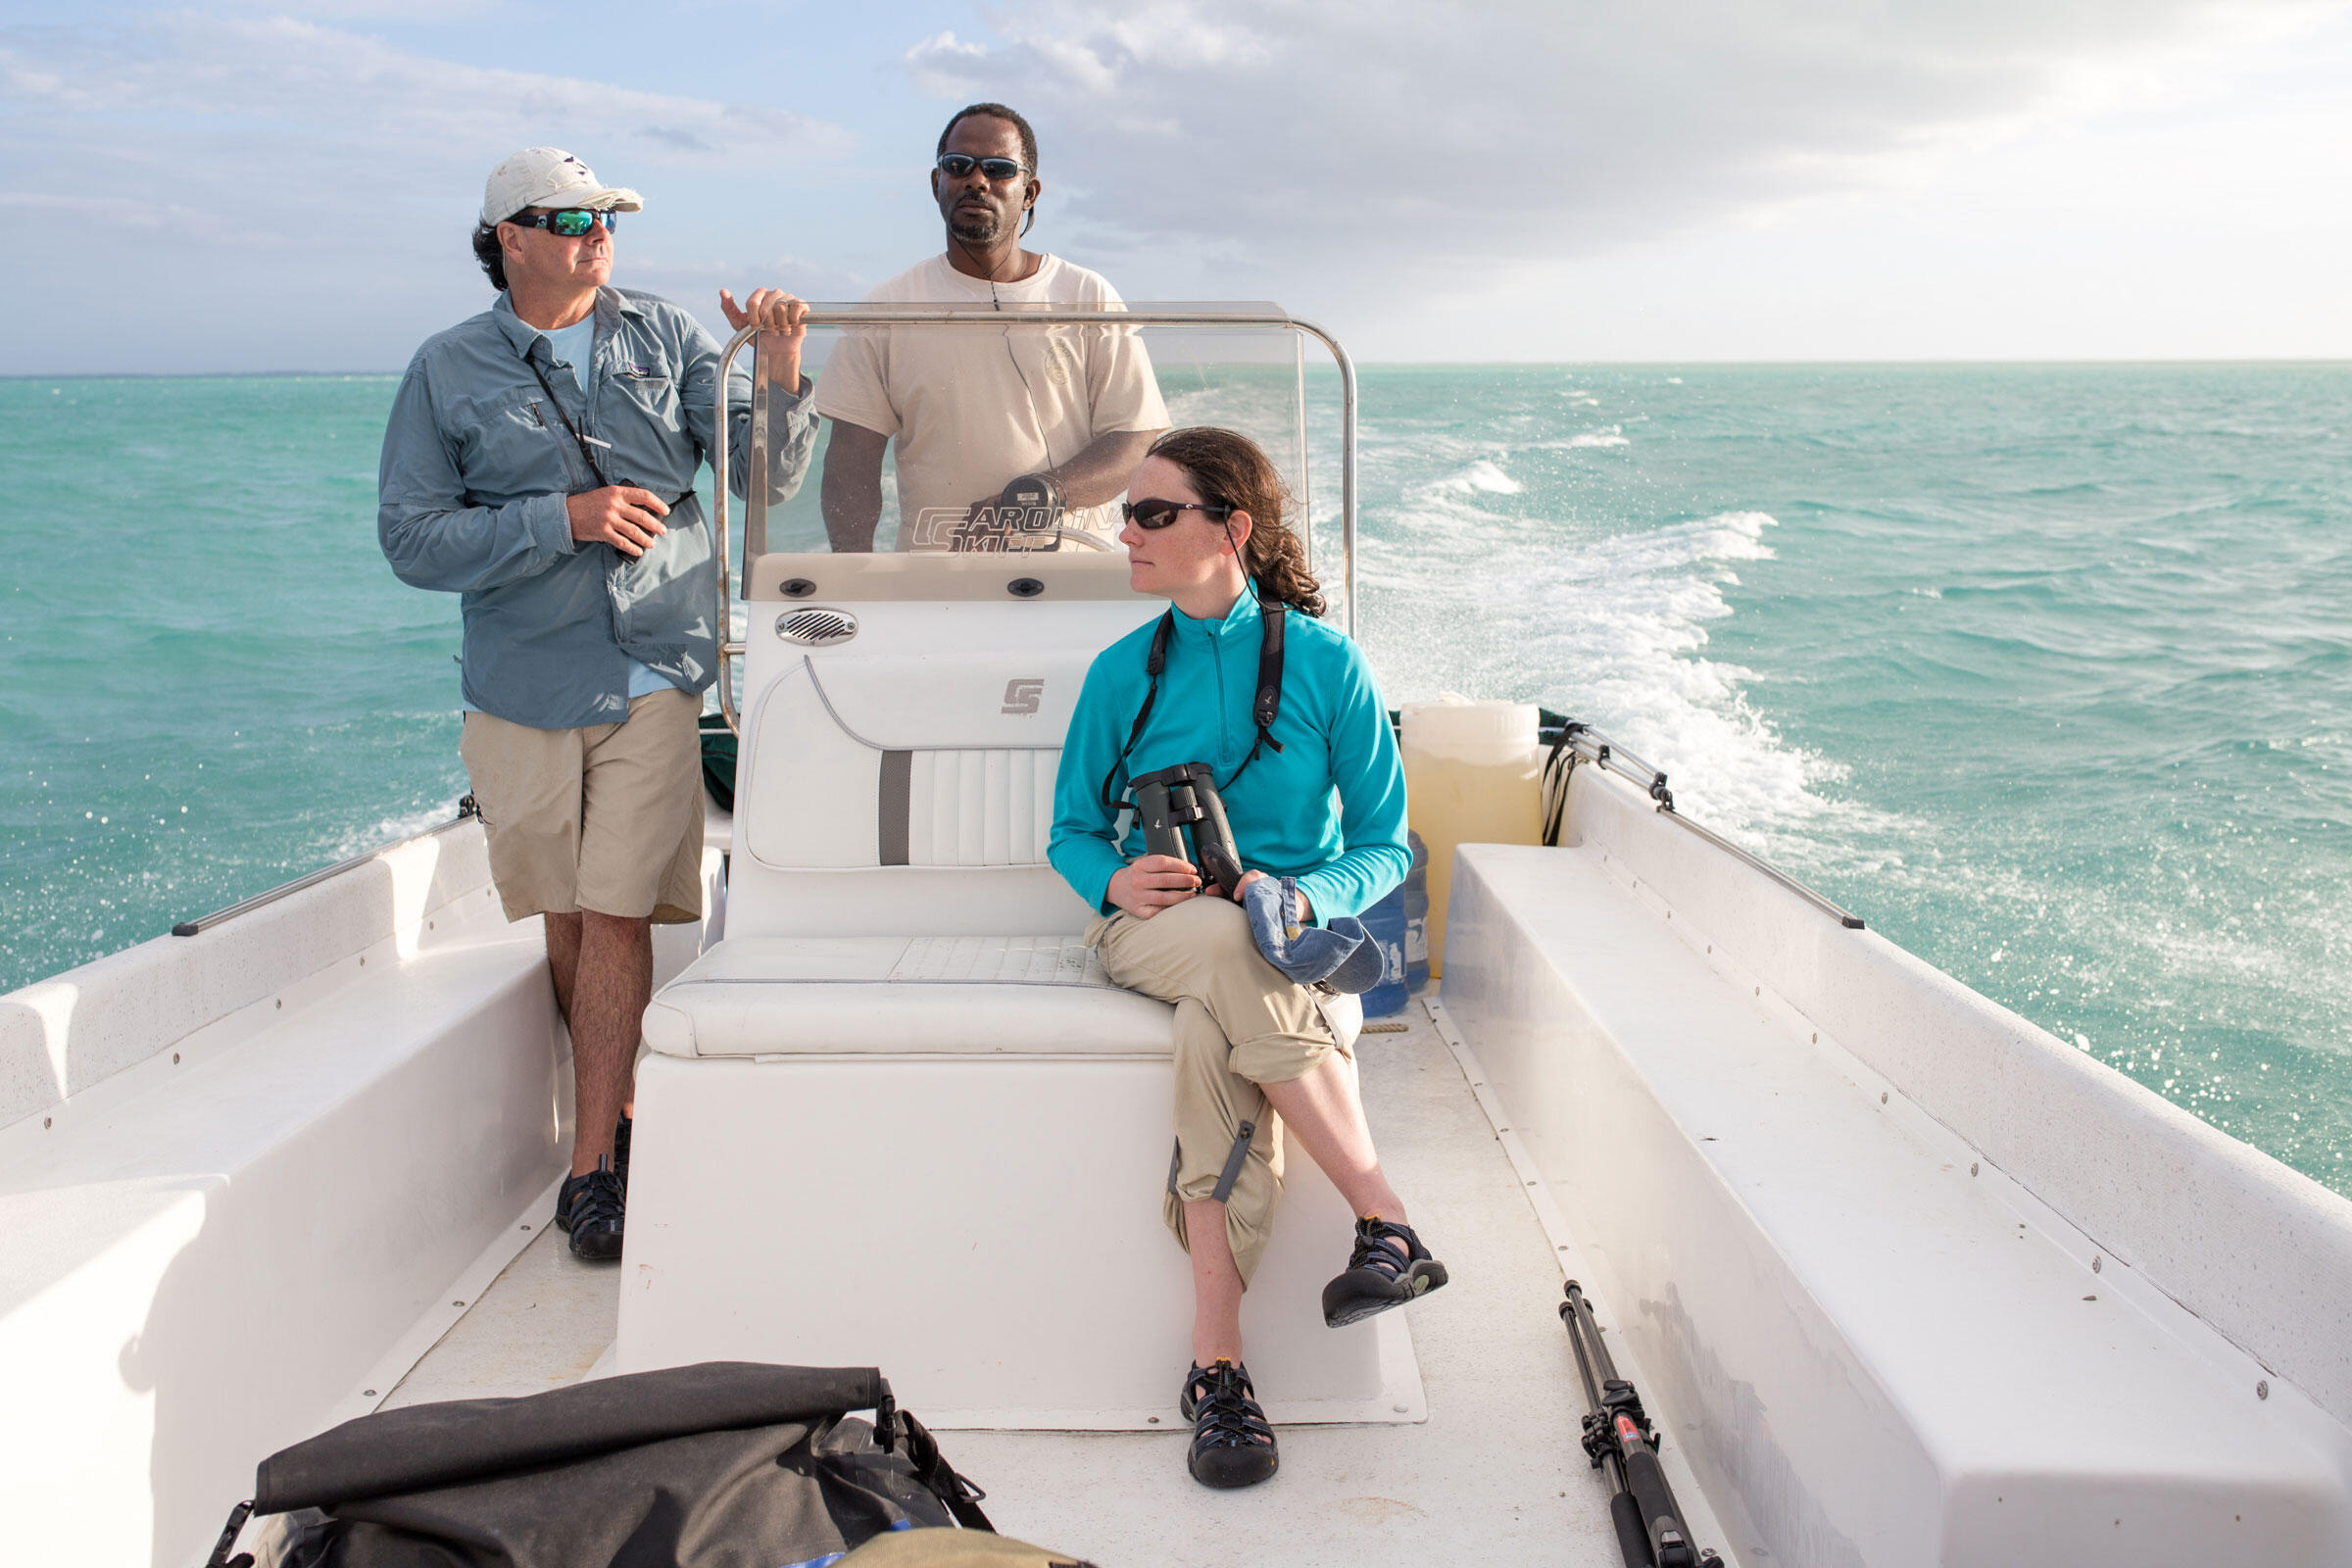 Island hopping: The team spent hours cruising the waters north of Andros, prowling for plovers (and sharks) on small motorized boats. They were led by BNT warden, local resident, and expert navigator Steve Smith (middle). Camilla Cerea/Audubon